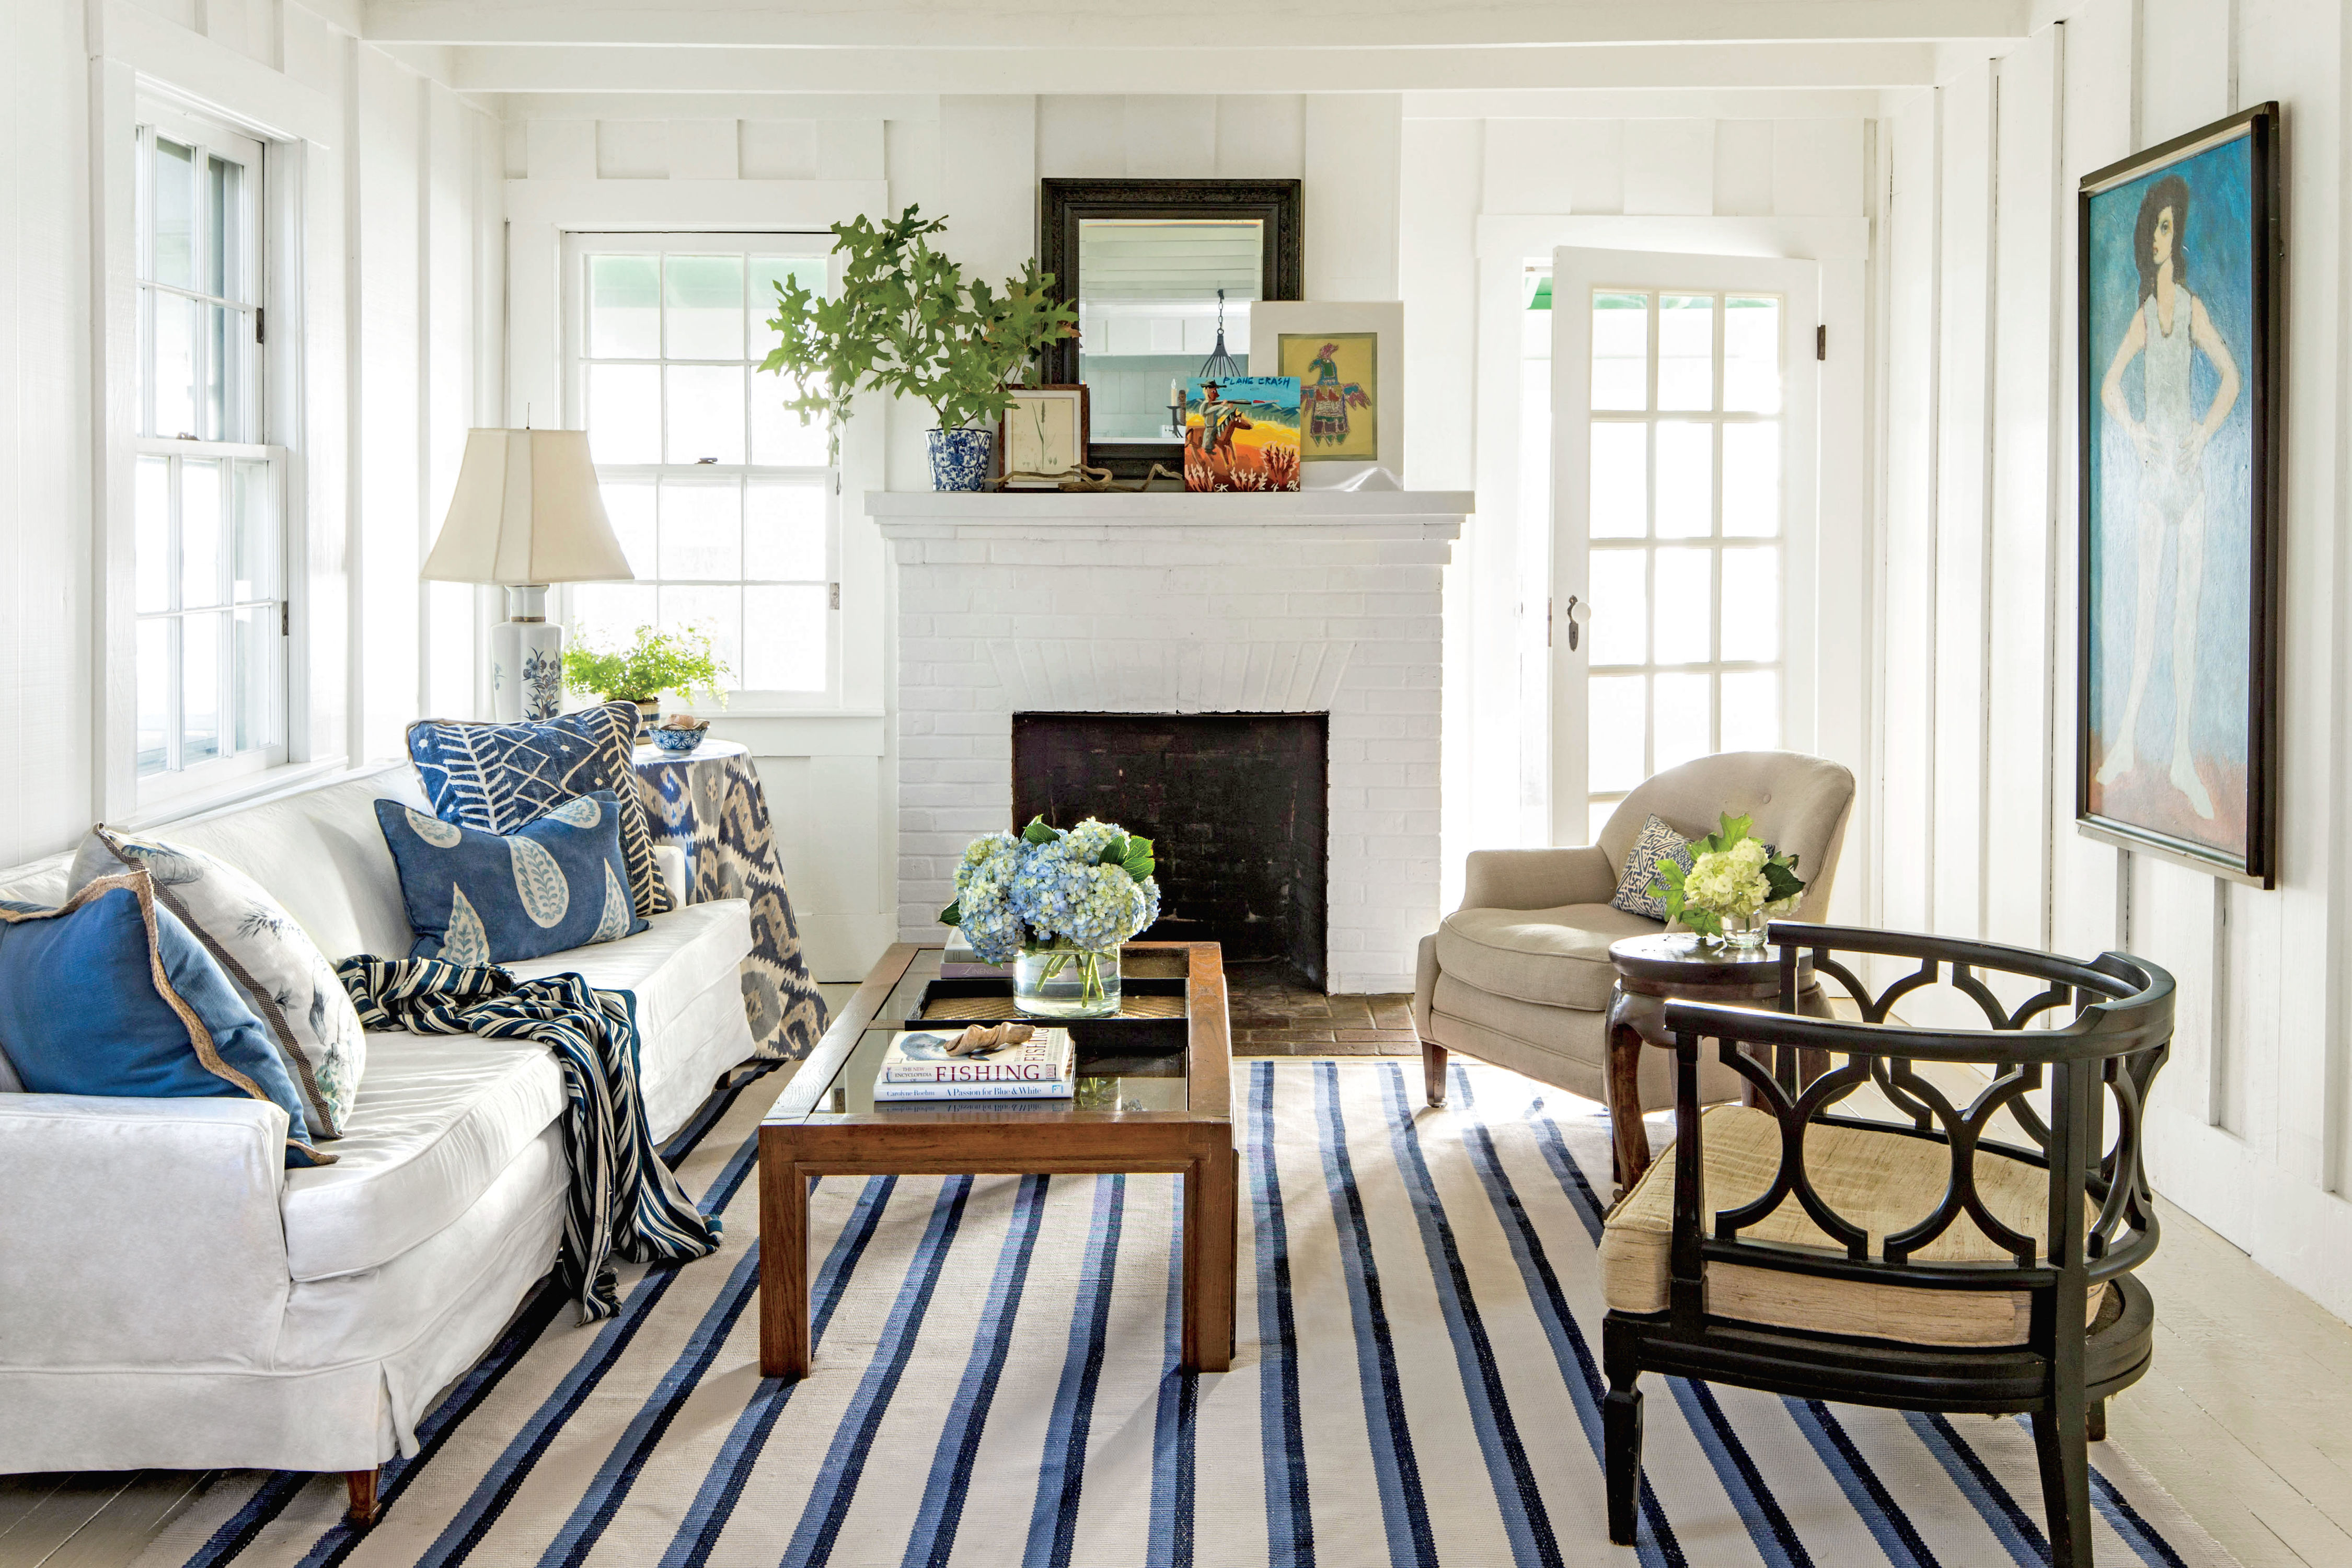 https://img1.southernliving.timeinc.net/sites/default/files/styles/landscape_3_2/public/image/2016/12/main/small-space-decorating-2016-2436301_potom00041.jpg